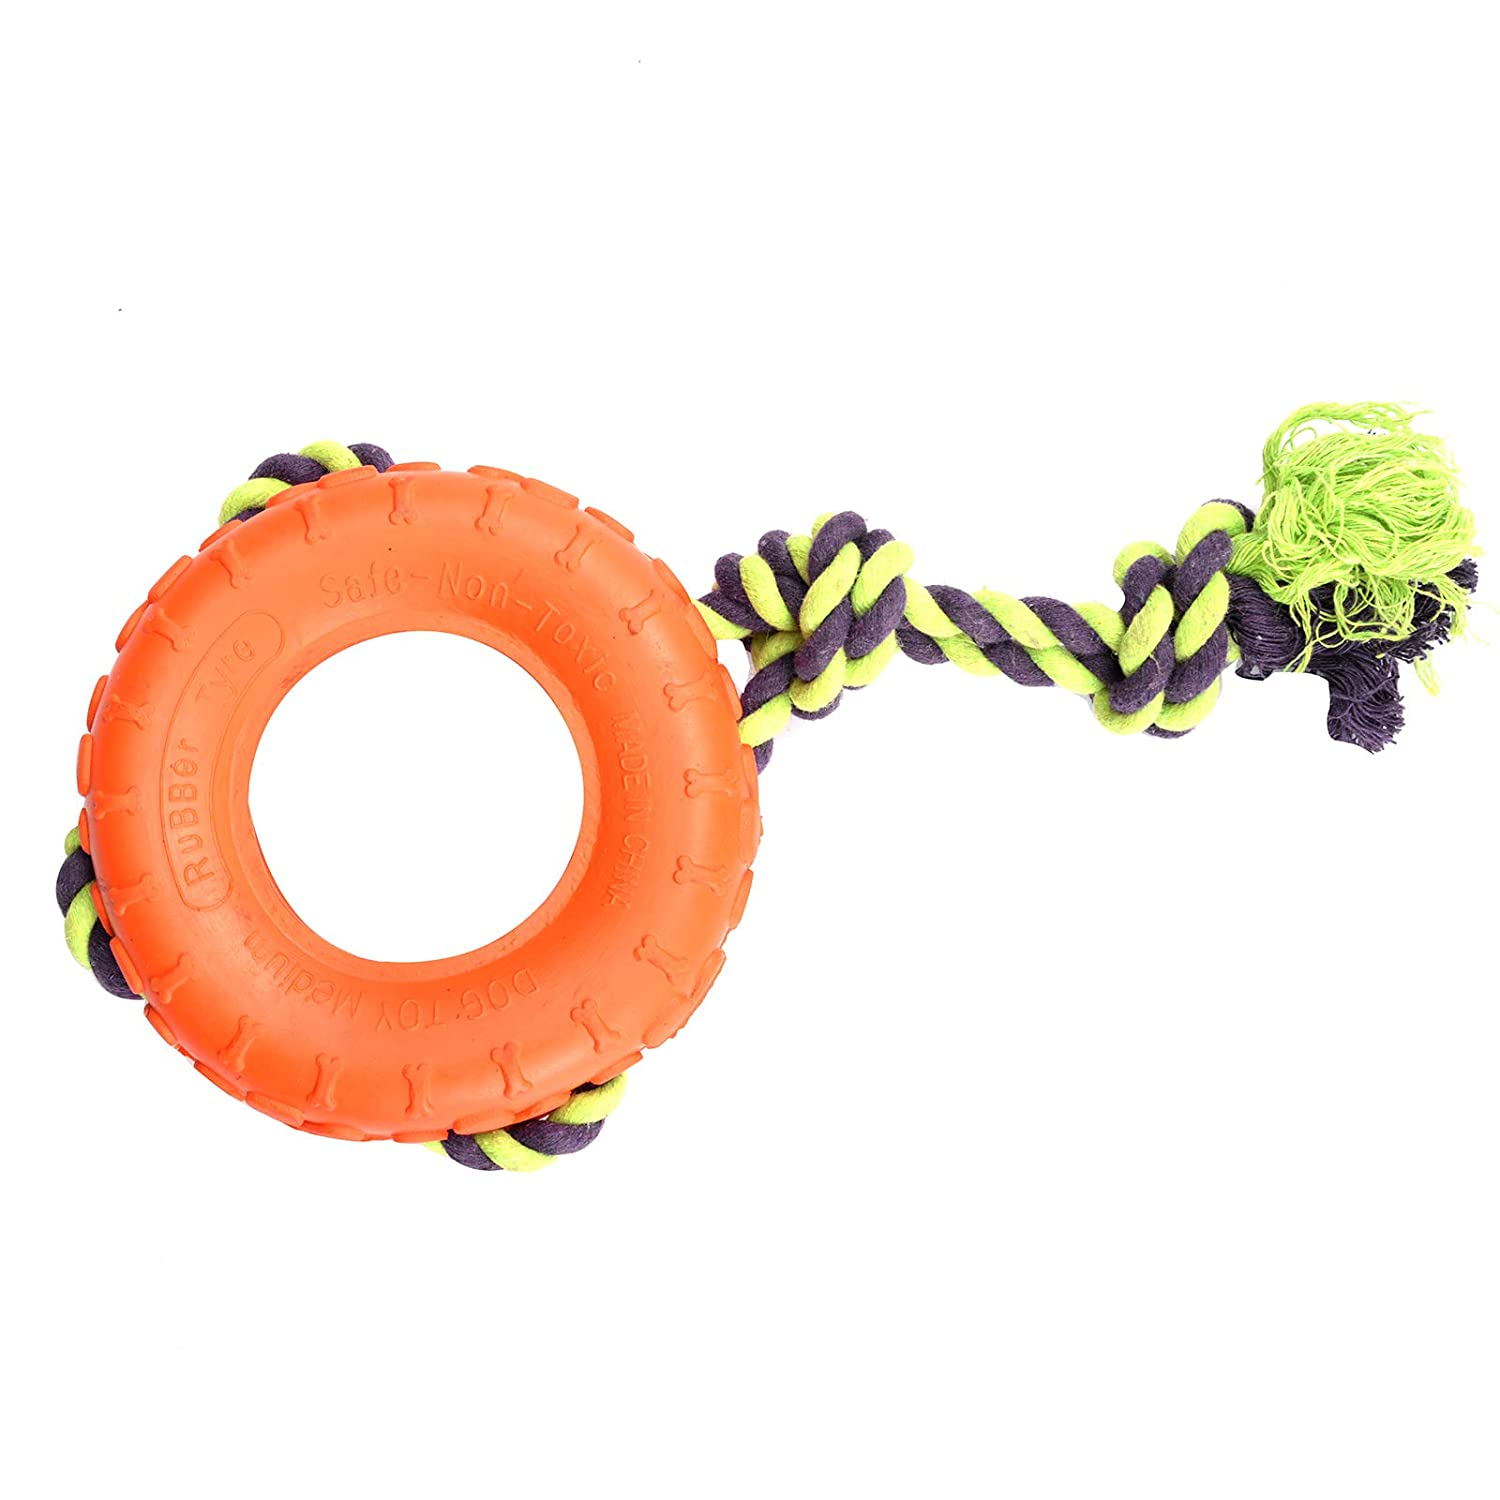 orange DS Tires with Rope for Dogs Toys Nontoxic Rubber Durable Chew Toys Tires Rope Toys for Small Medium Dogs Intelligence Training Sports Training Perfect Dog Interaction orange